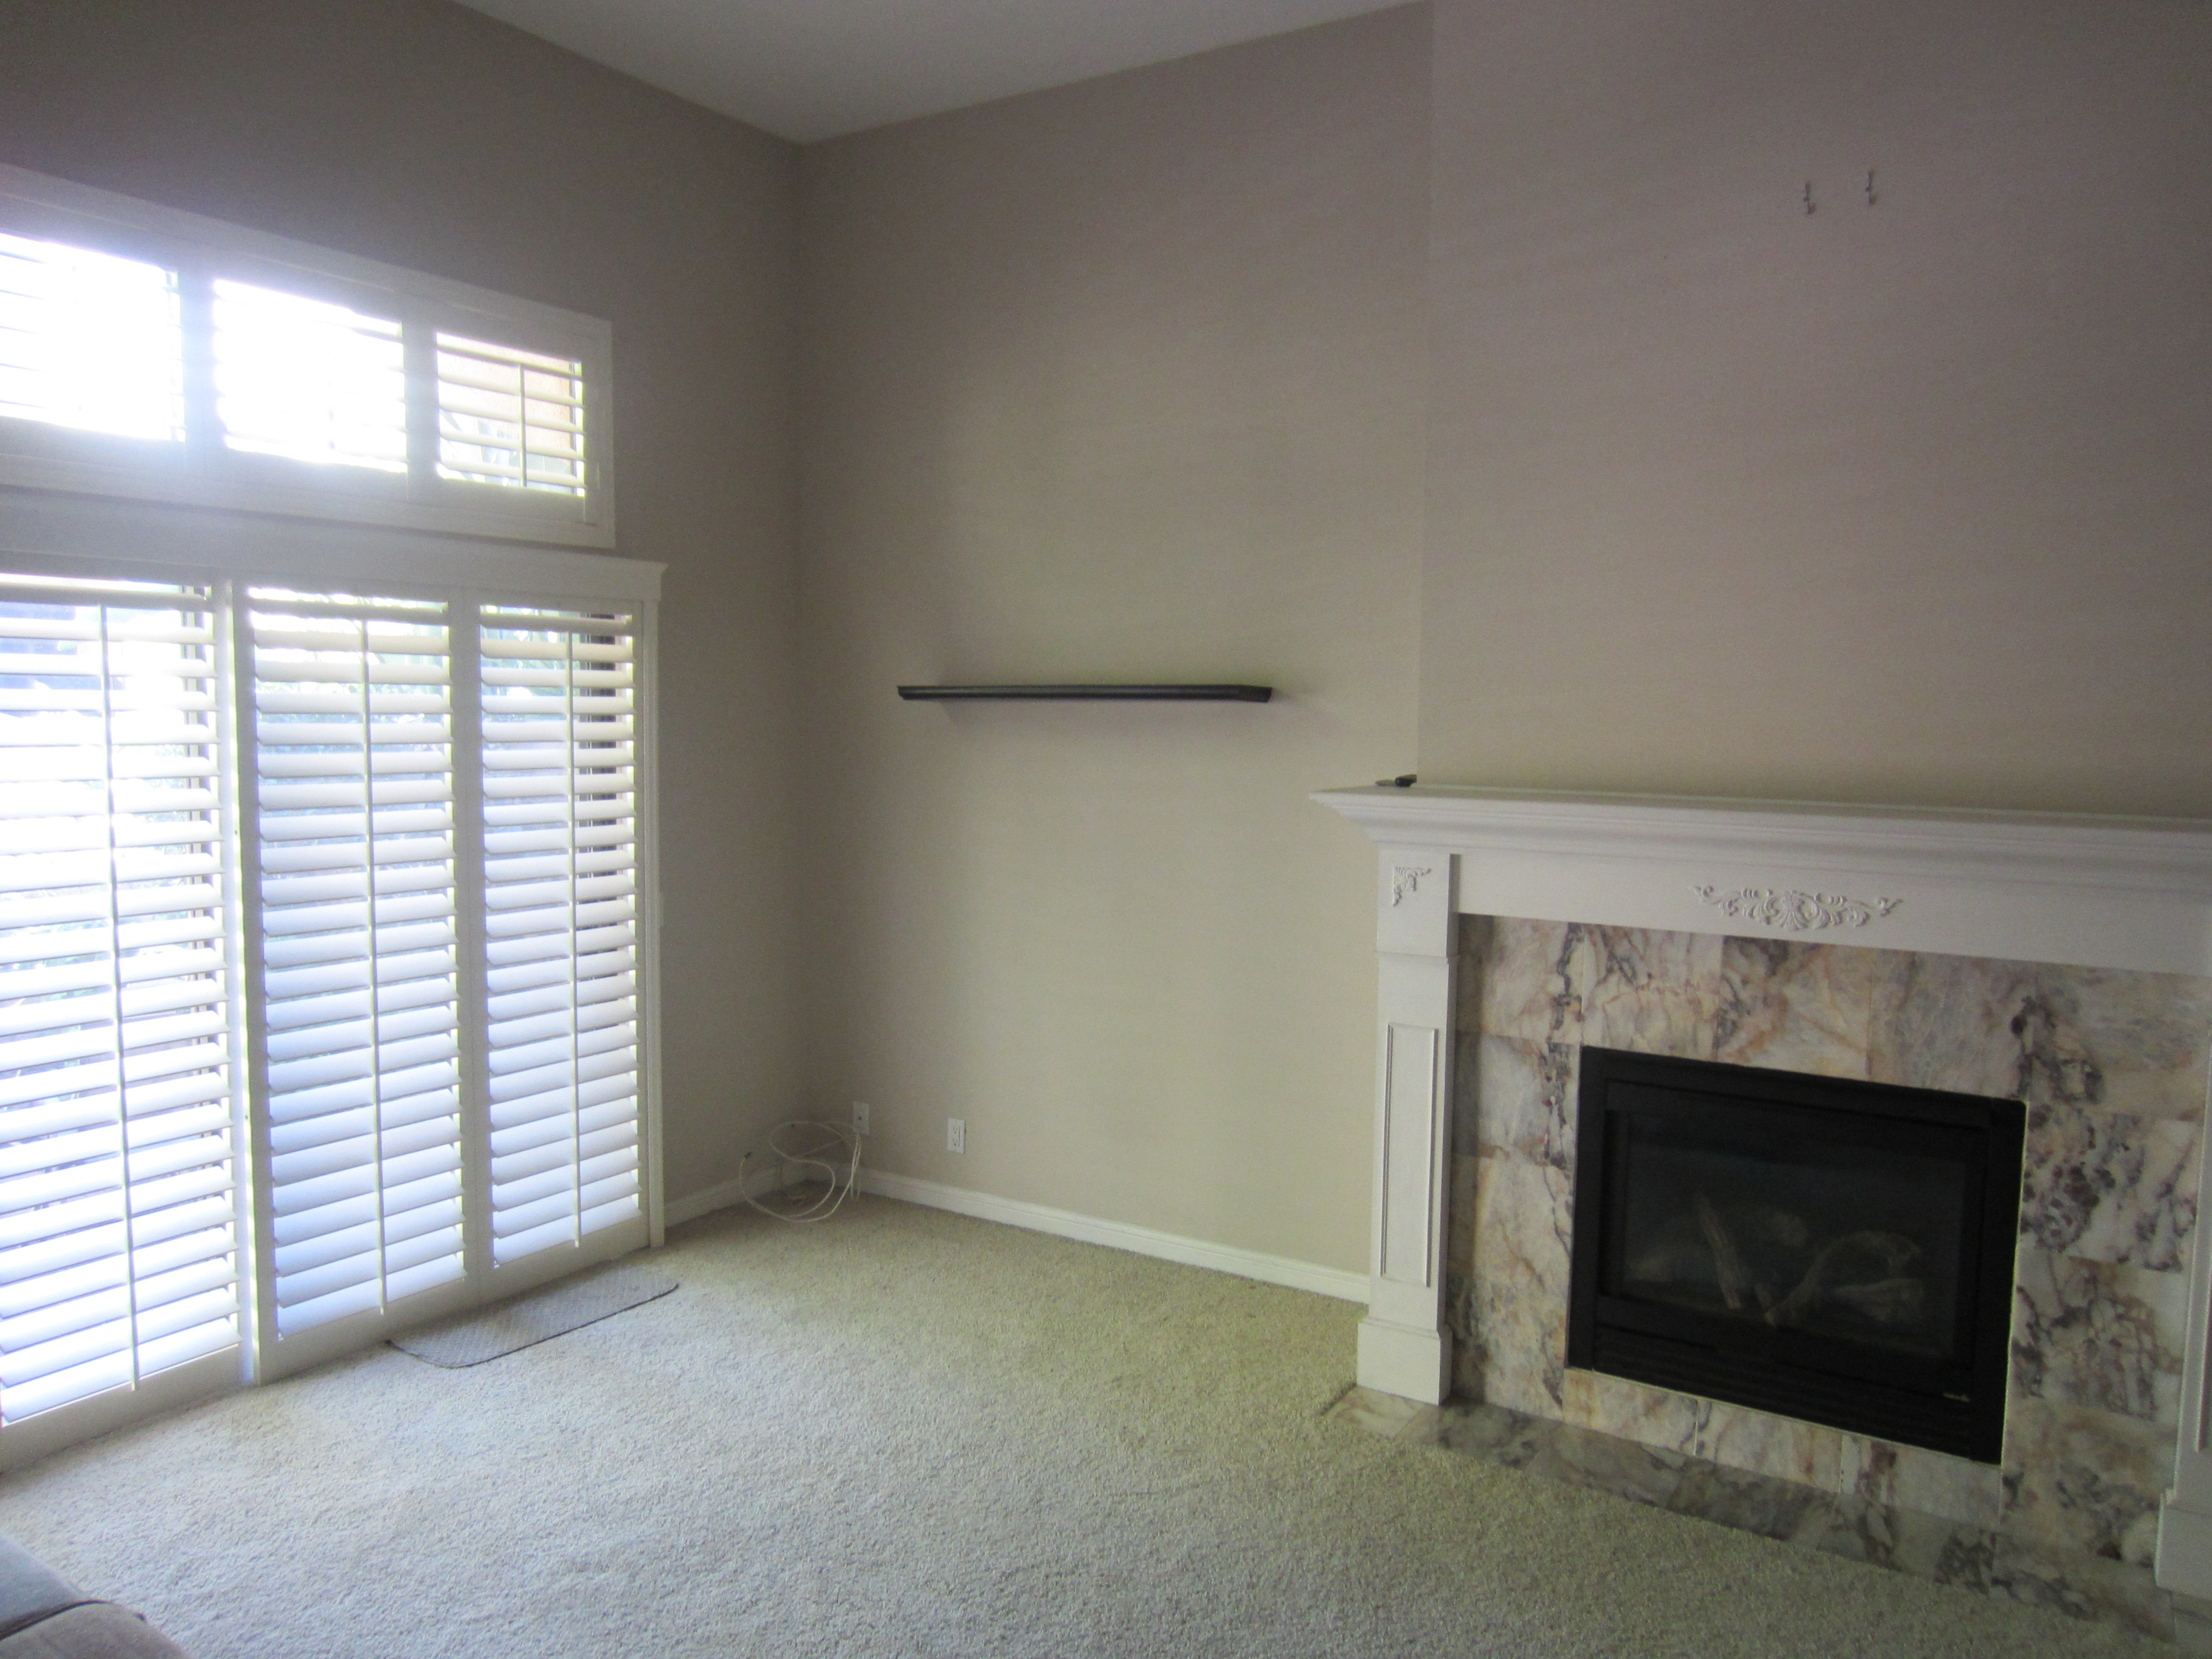 For Rent Spacious 3 Bedroom 2 5 Bath Townhouse In Fullerton